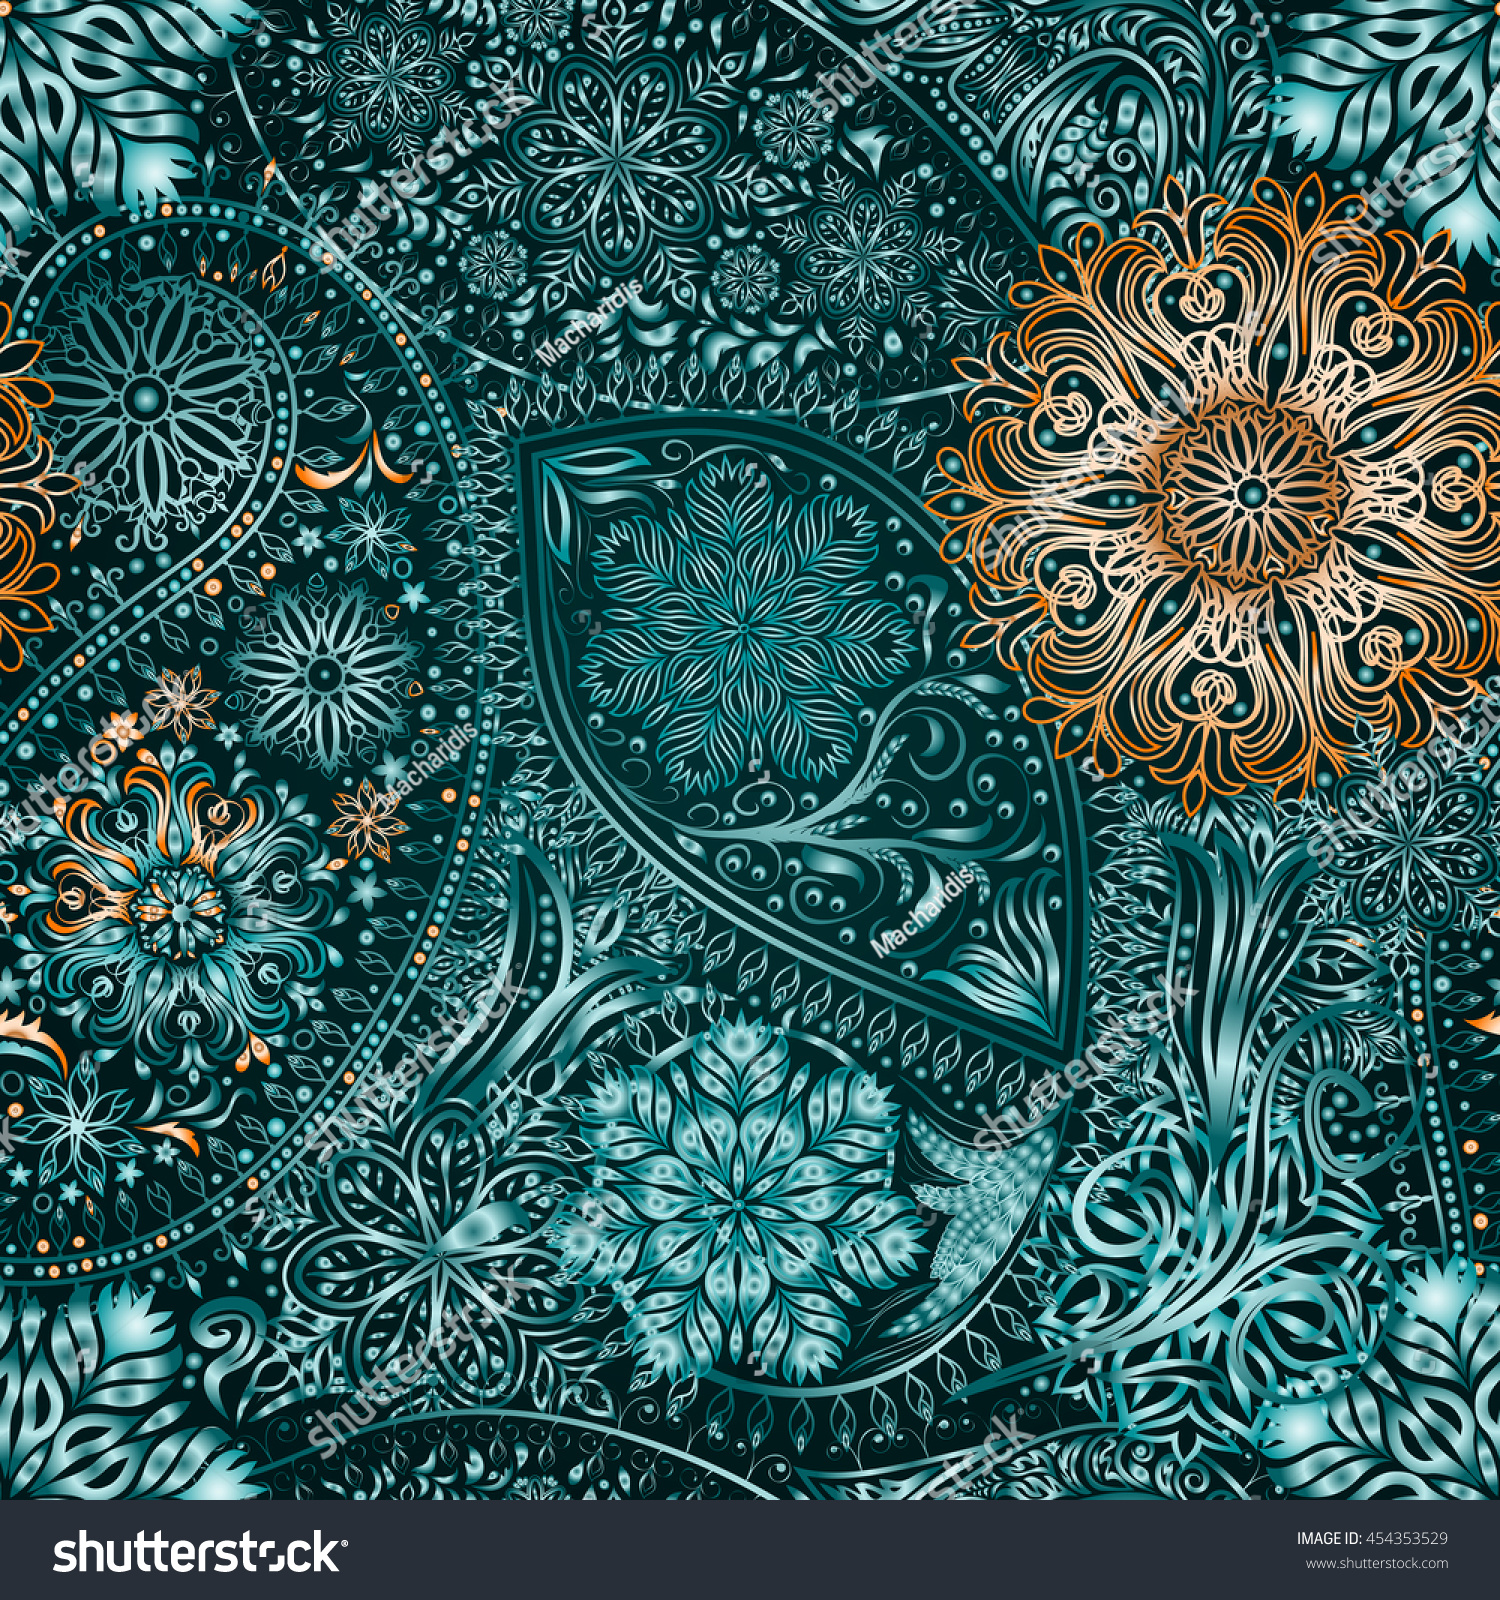 paisley vintage floral motif ethnic seamless background abstract lace pattern hand drawing. Black Bedroom Furniture Sets. Home Design Ideas